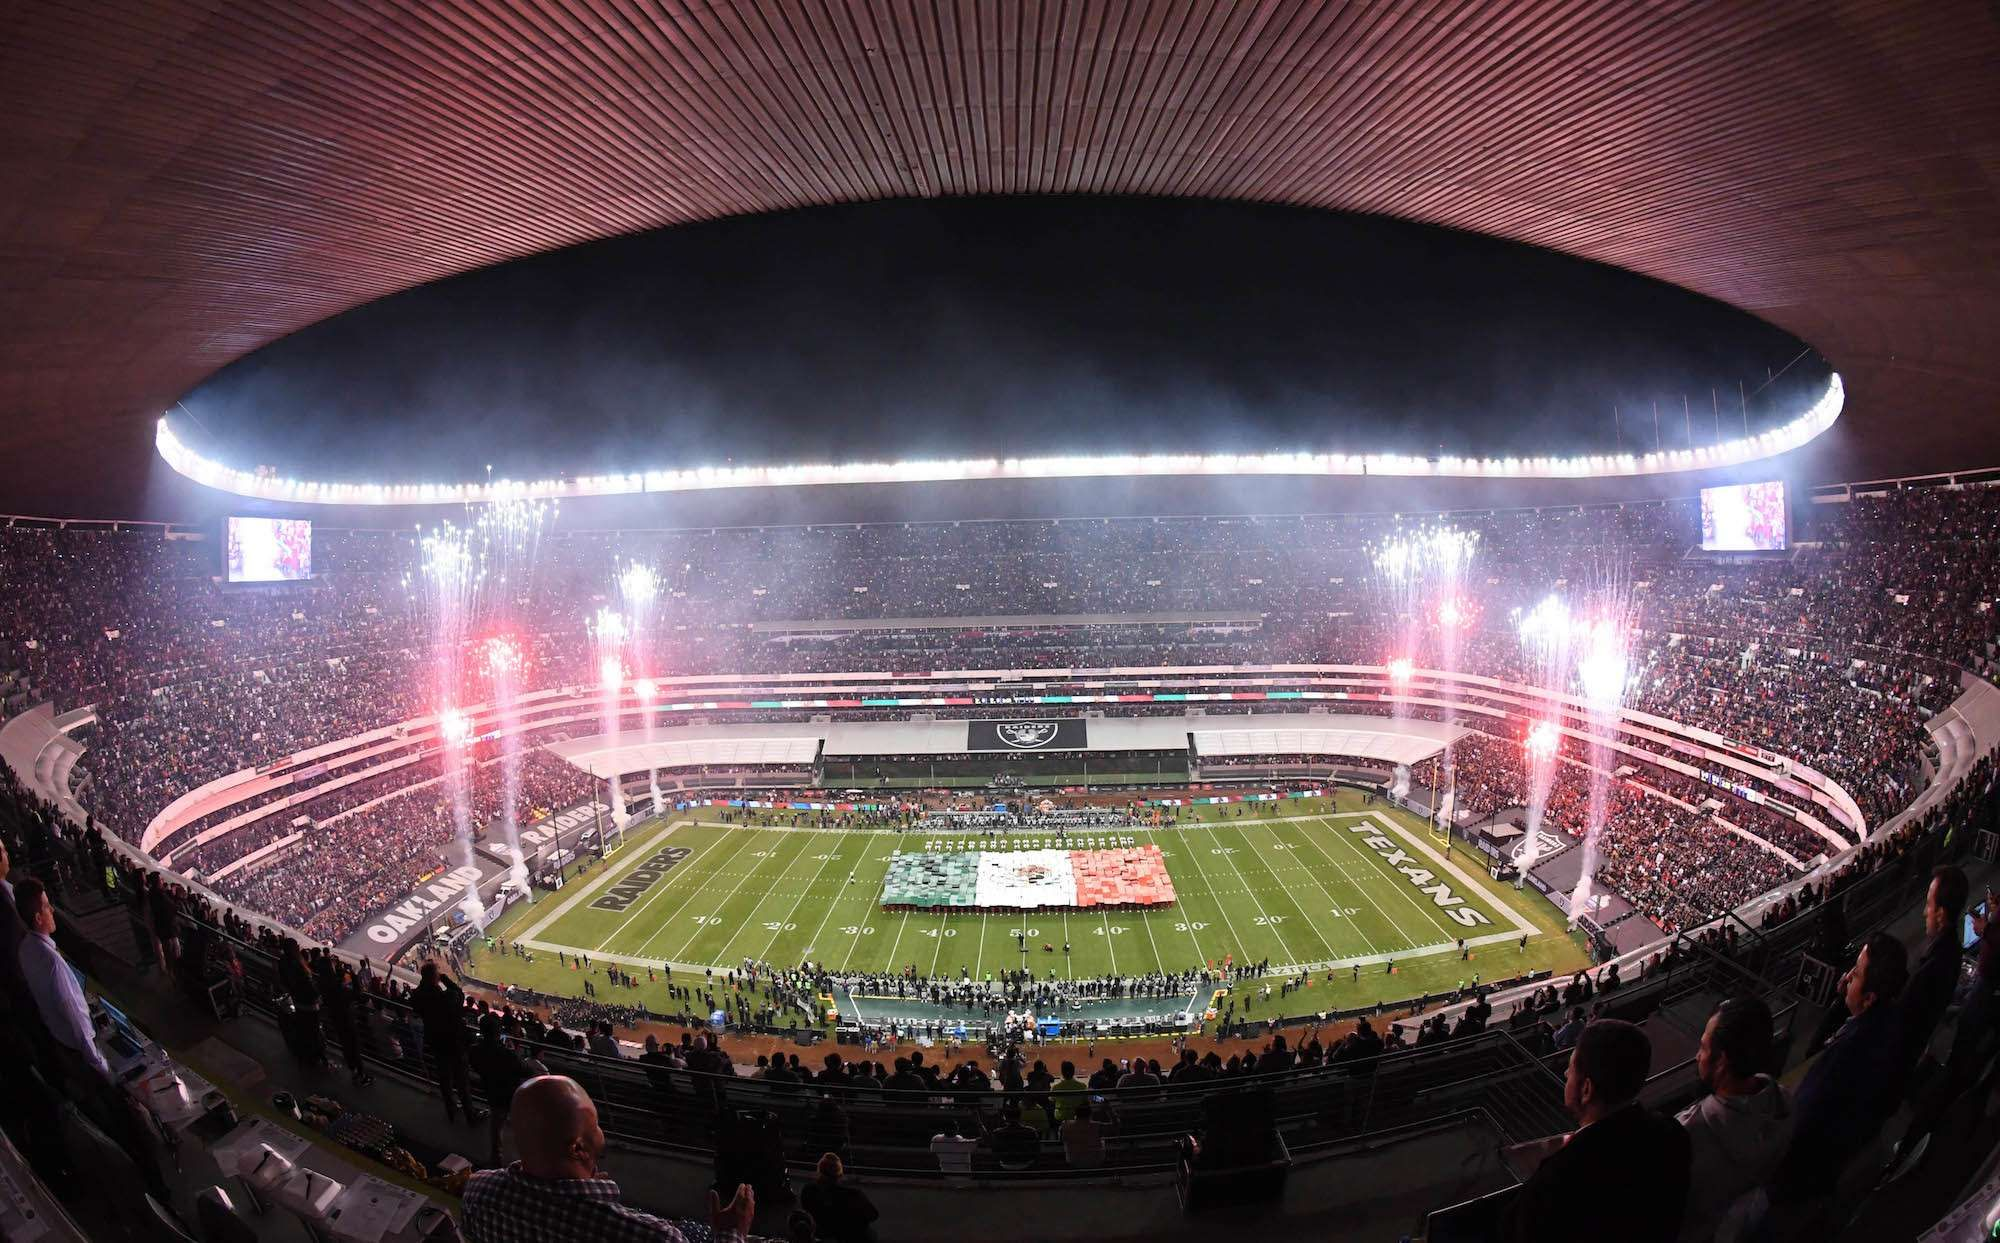 The 30 Biggest Sports Stadiums In The World Ranked By Crowd Capacity New England Patriots Soccer Stadium Sports Stadium